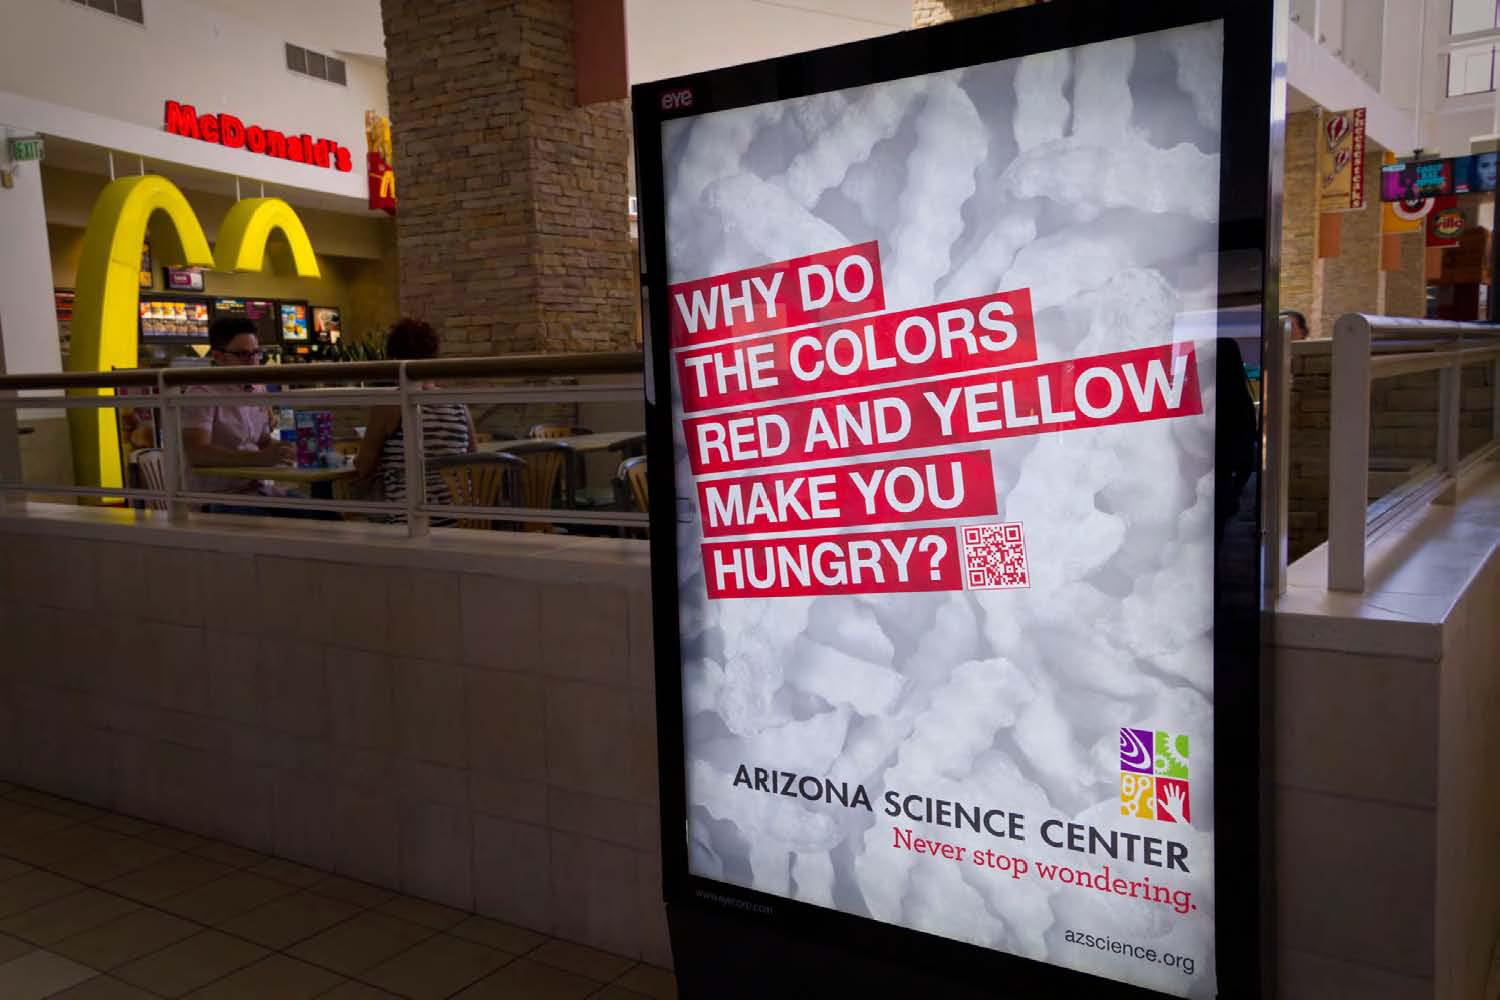 Arizona Science Center Outdoor Ad -  Never stop wondering, Yellow Red Hungry